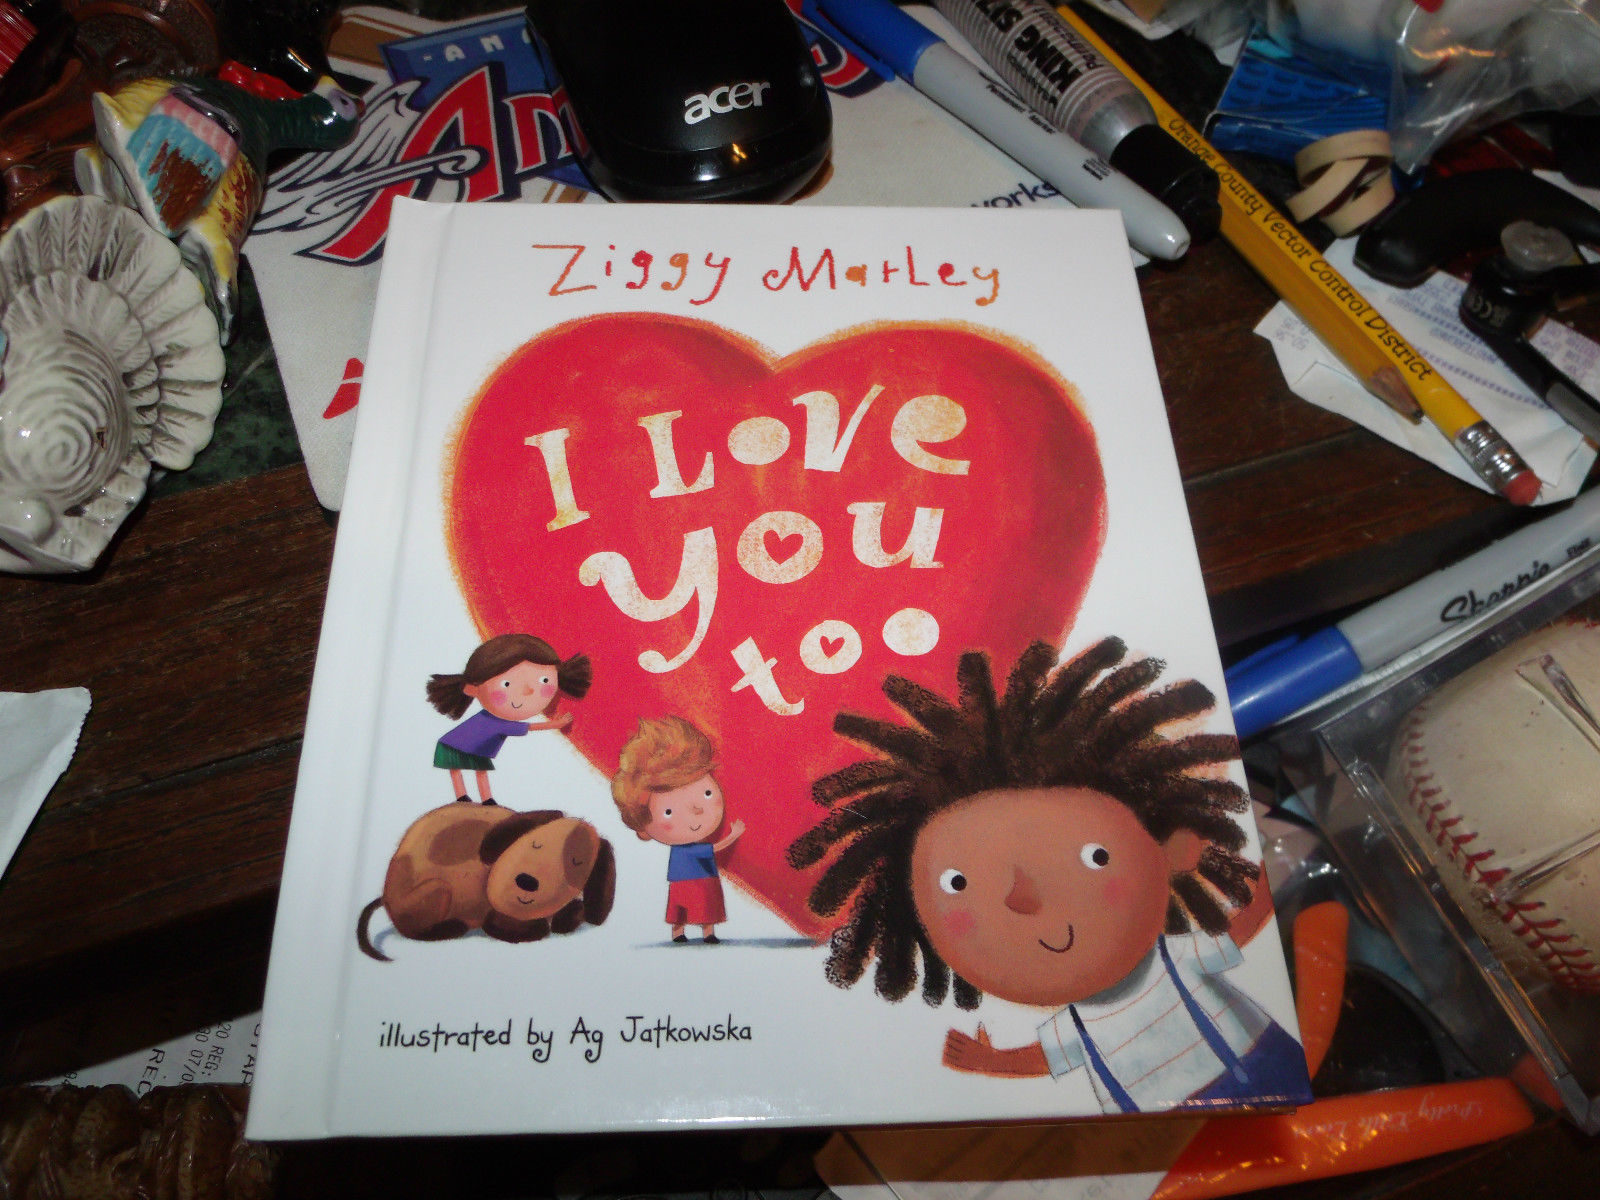 I LOVE YOU TOO SIGNED BY ZIGGY MARLEY SPECIAL EDITION HARDCOVER RARE